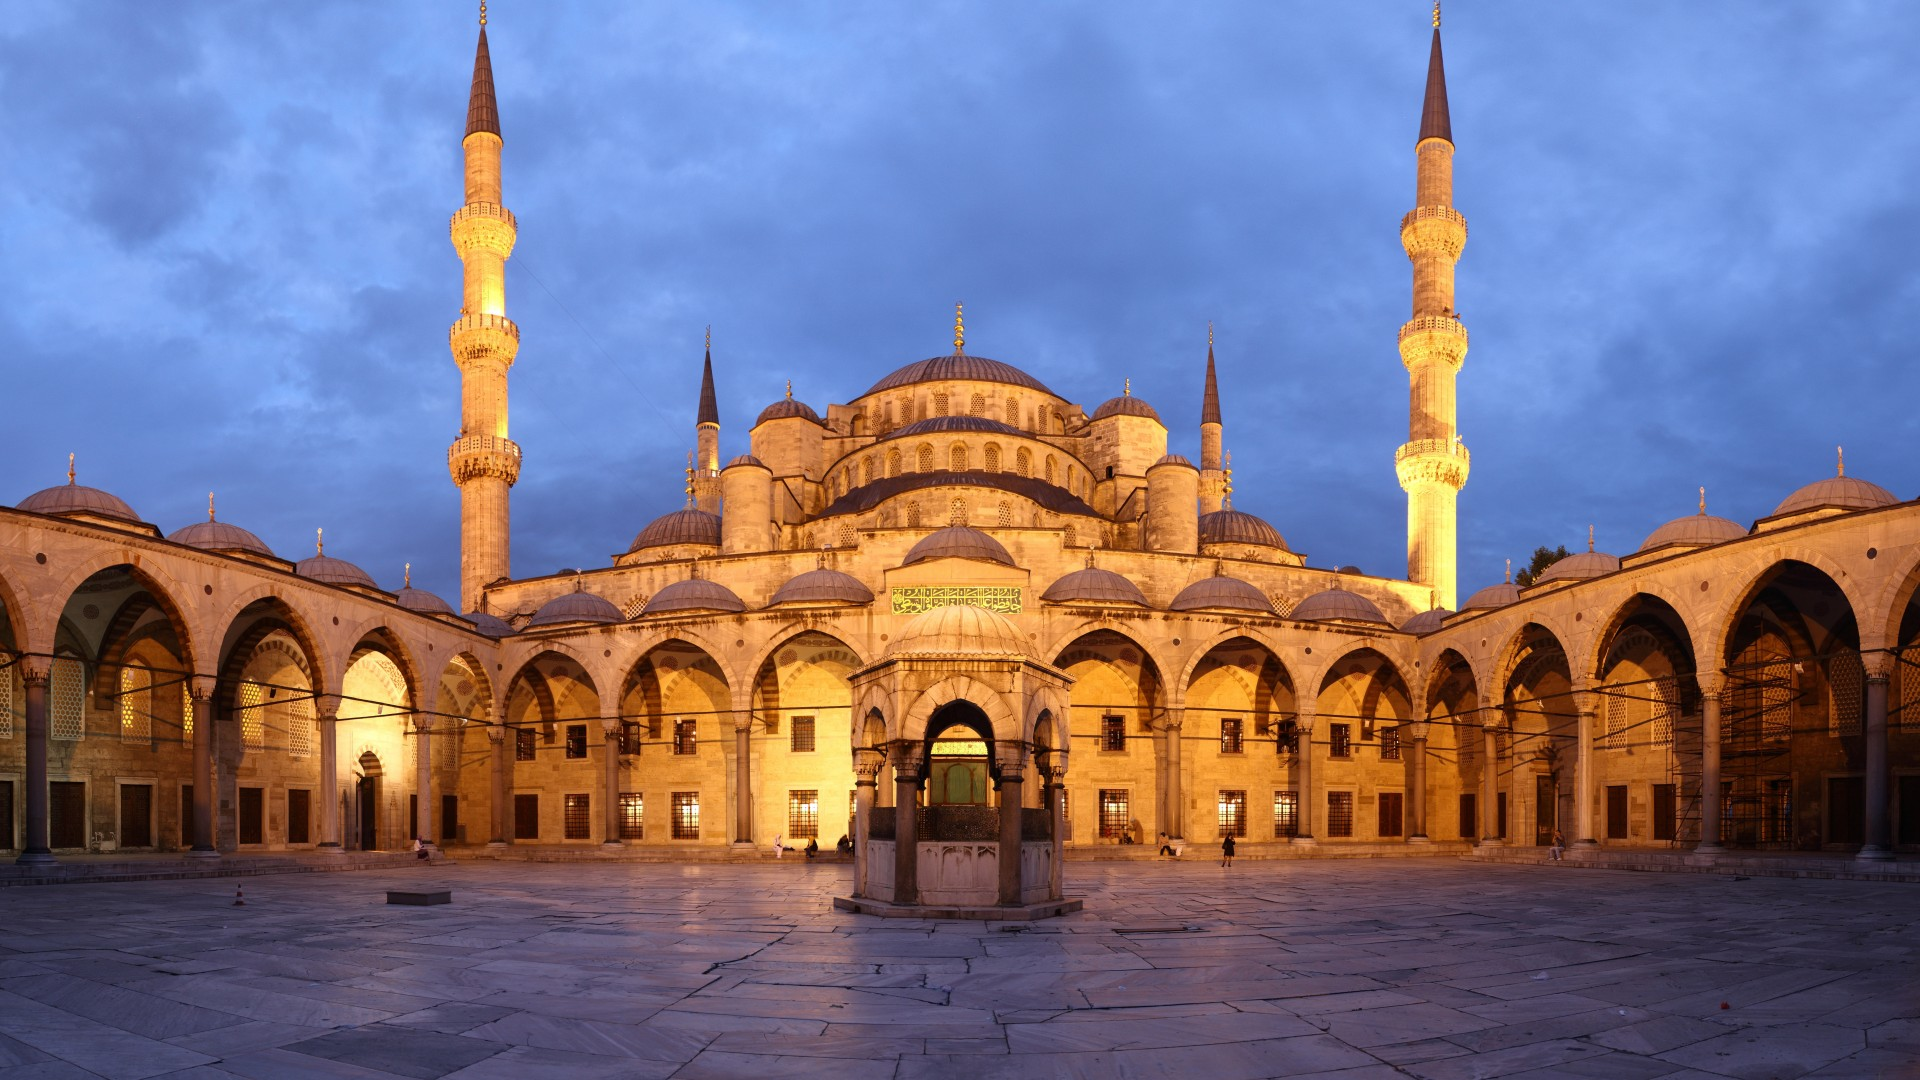 The Blue Mosque, Istanbul, travel, vacation, sky, booking, architecture (horizontal)